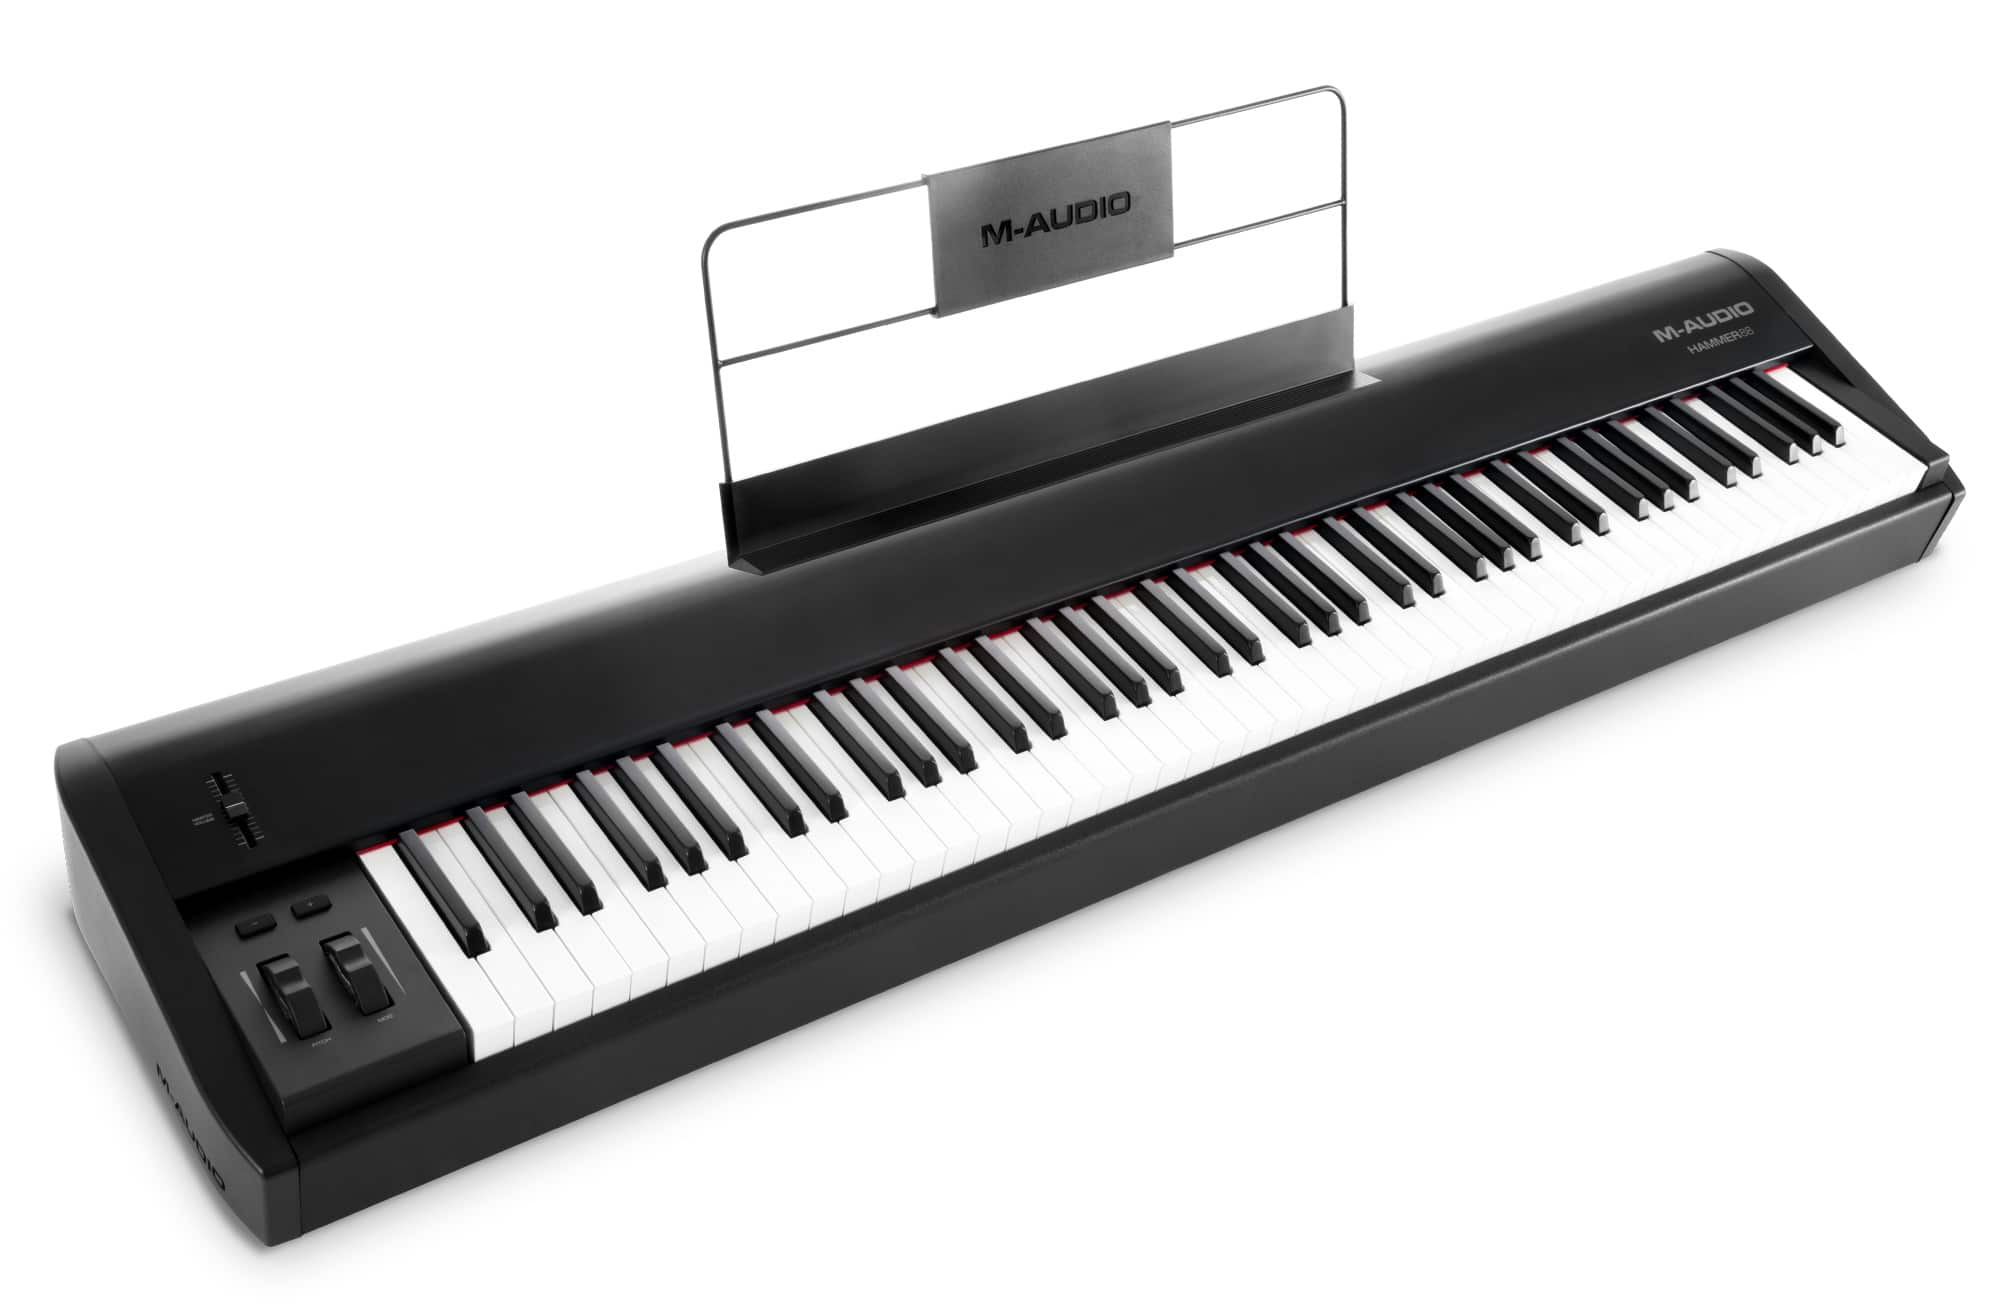 M-Audio Hammer88 MIDI Keyboard